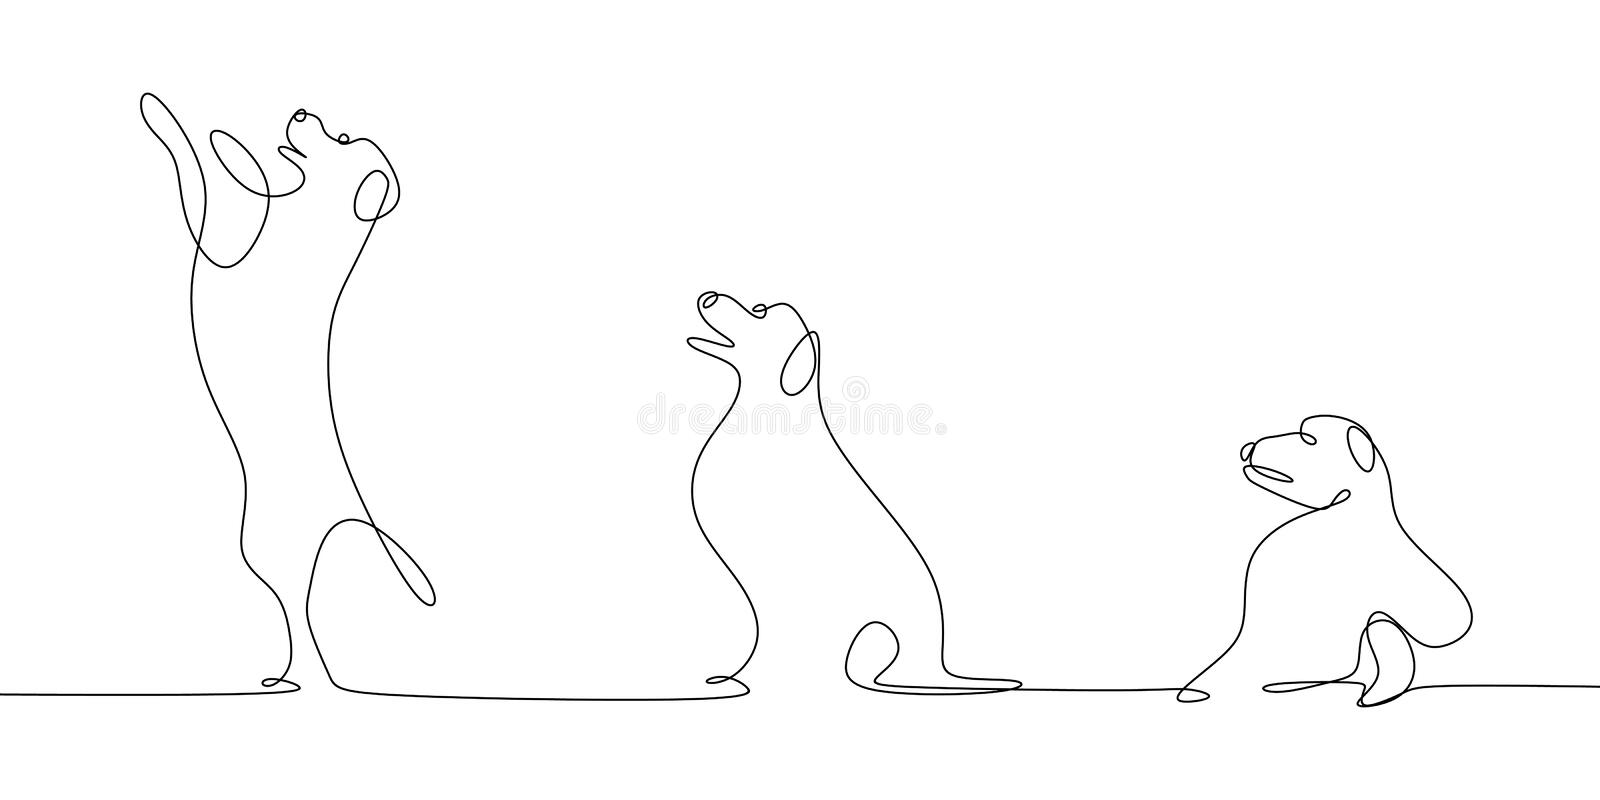 Continuous line drawings of dogs want to jump stock illustration